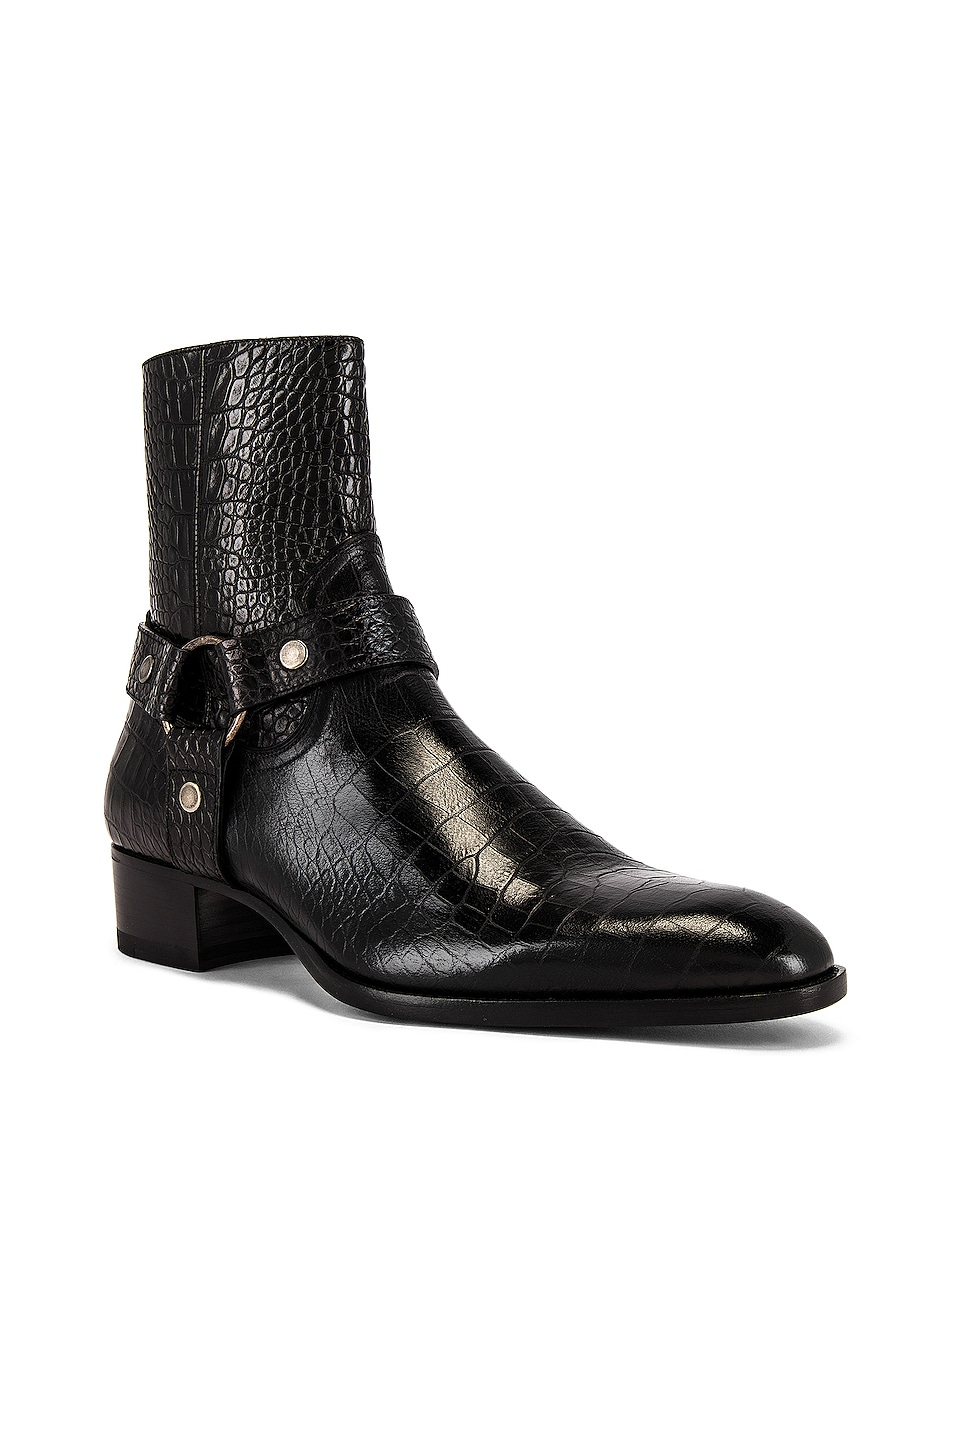 Image 1 of Saint Laurent Wyatt 40 Harness Boot in Black